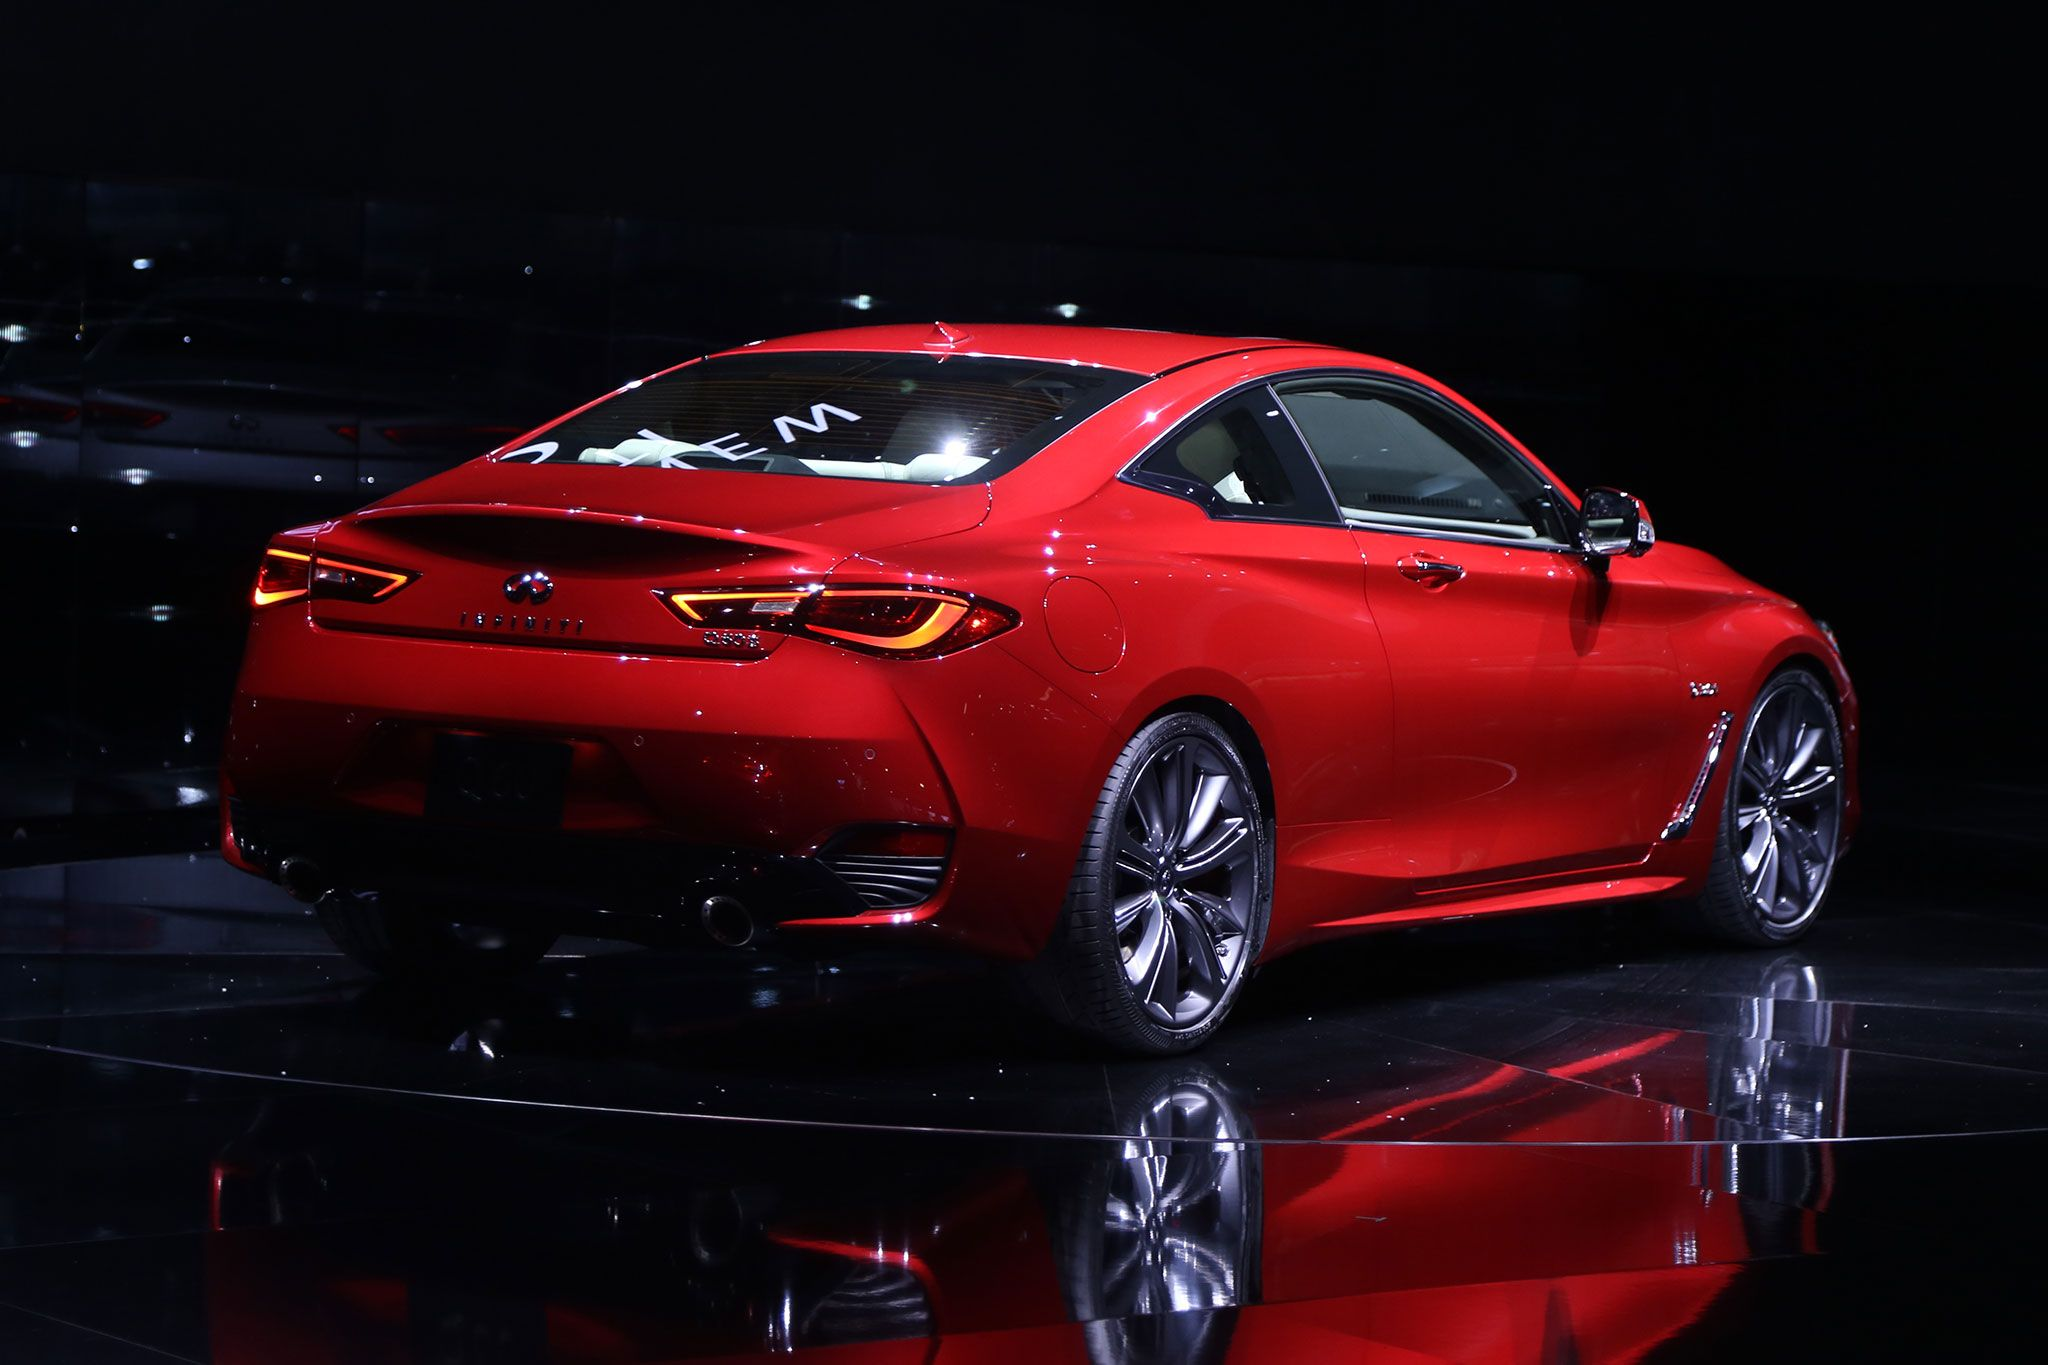 2017 Infiniti Q60 Art in Motion